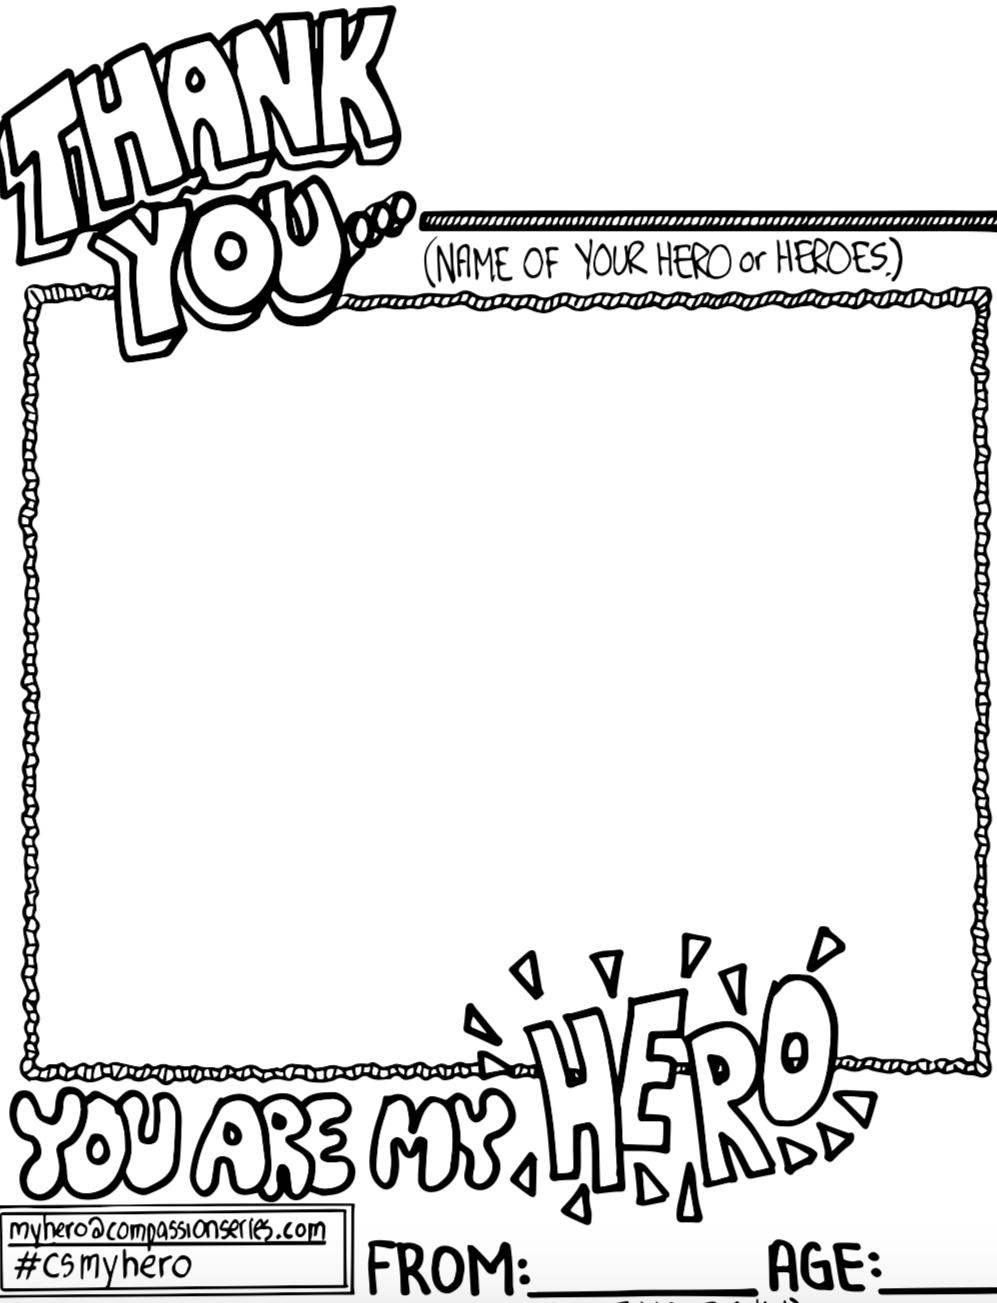 WHO'S YOUR HERO? Colouring Pages